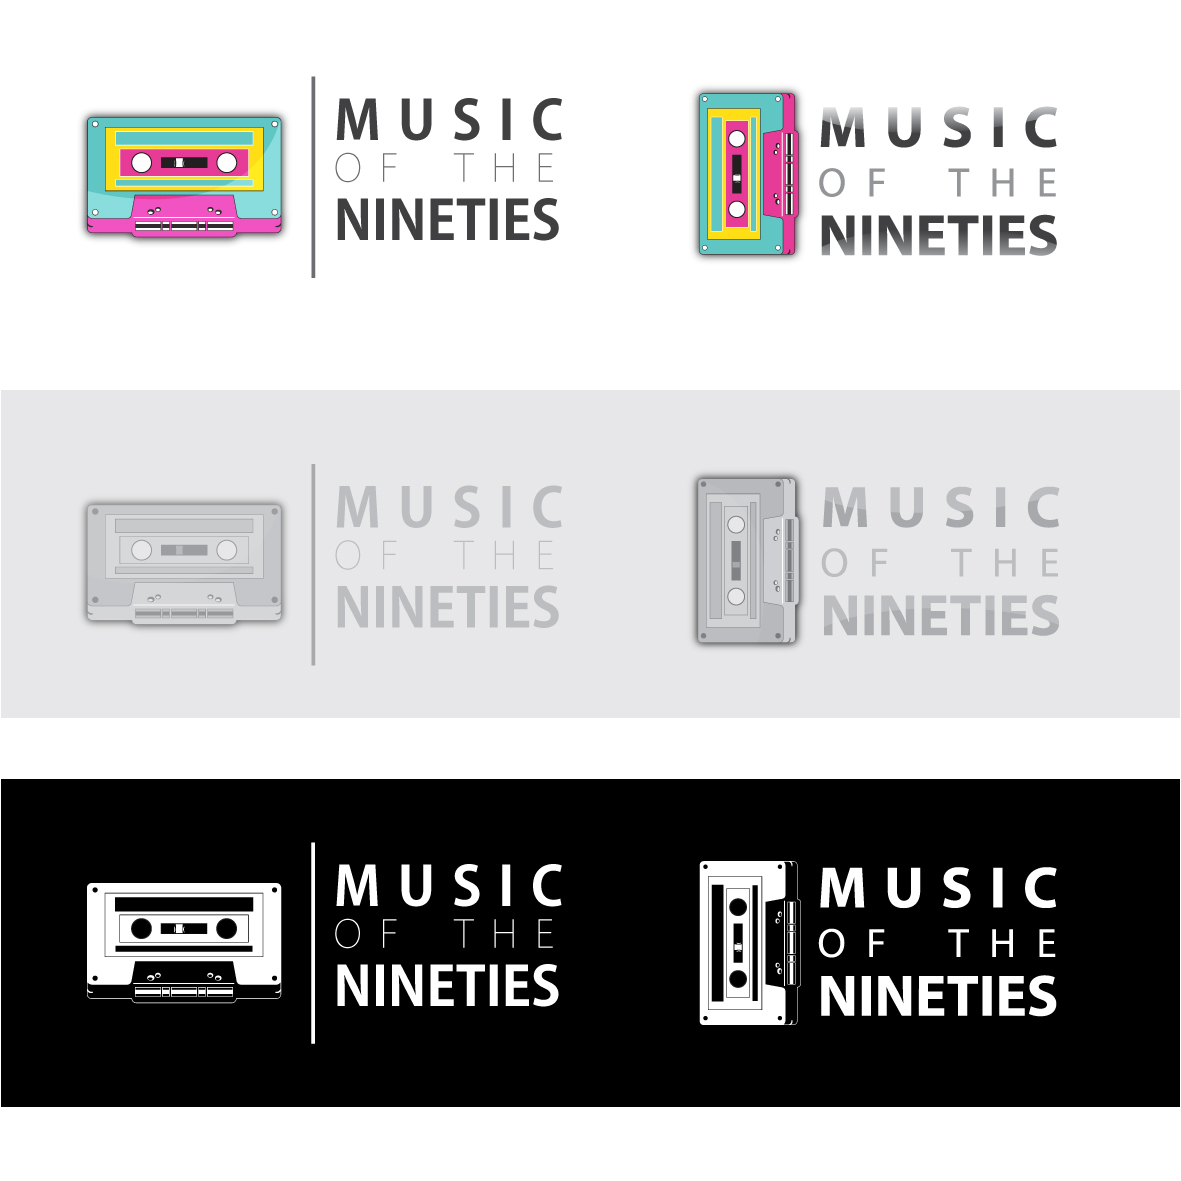 Logo Design by ex - Entry No. 14 in the Logo Design Contest Music of the Nineties Logo.